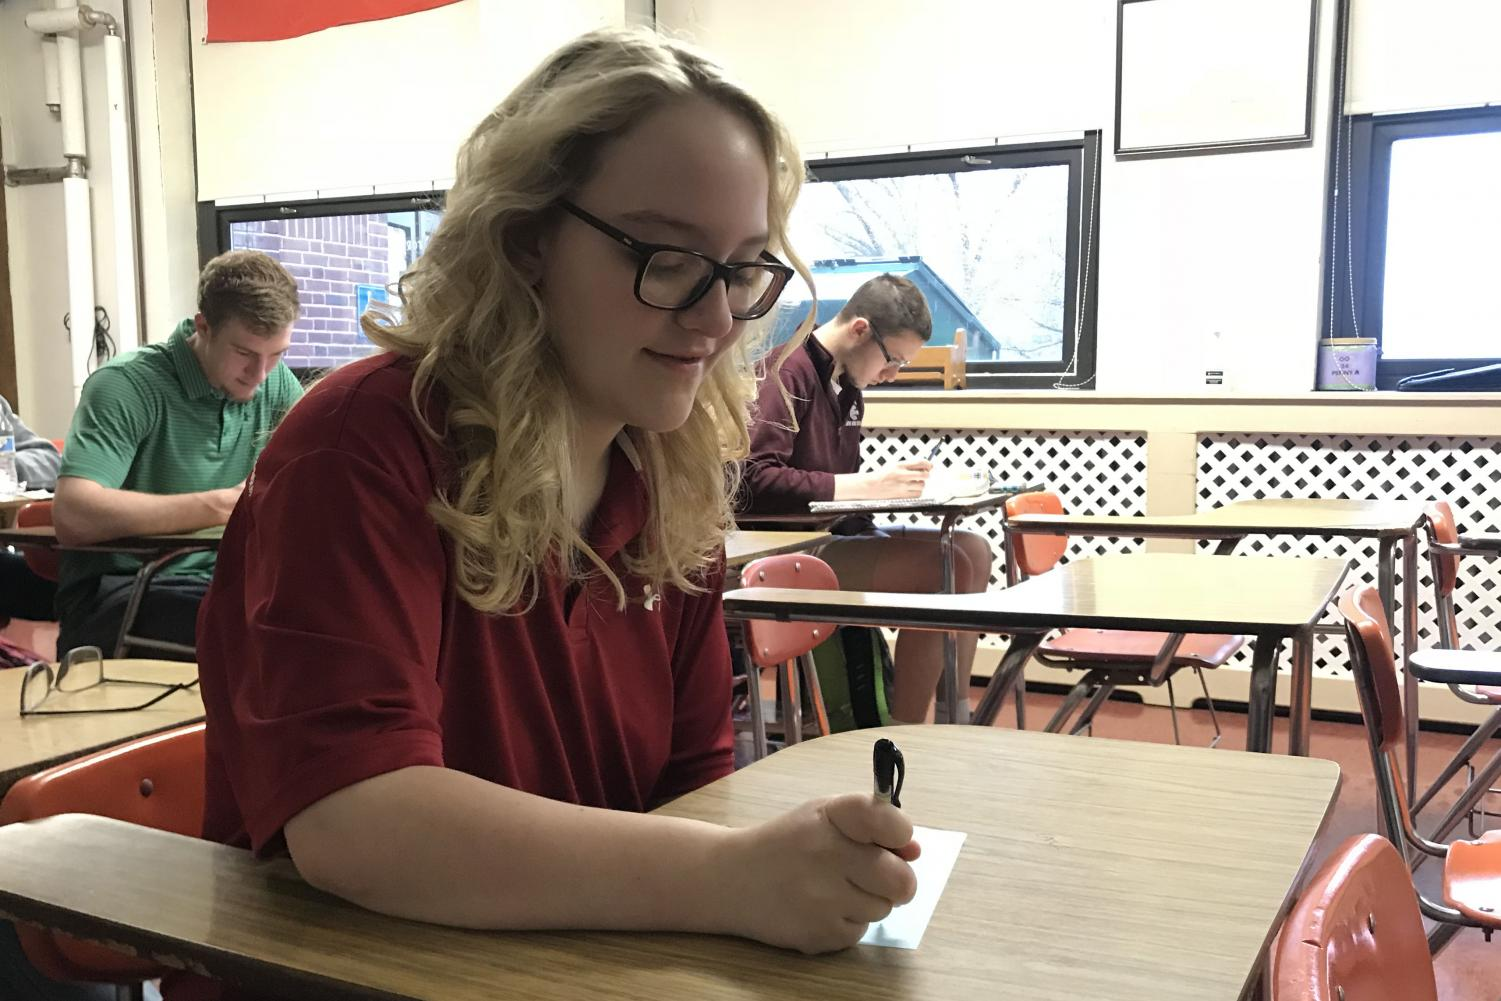 """THINK - While sitting in homeroom, senior Abby Wiederhold fills out a slip that instructed her to explain her favorite part of PAHS. The slips were distributed to each homeroom for students to fill out and were then hung up outside of Room 223 to showcase all the good students see in the school. """"I felt like this was a great initiative to promote positivity in our school,"""" Wiederhold said. """"Lately, there have been a lot of things that schools are trying to do in order to get students to be more comfortable and happy in their academic environments, so I thought this was a step in the right direction."""""""